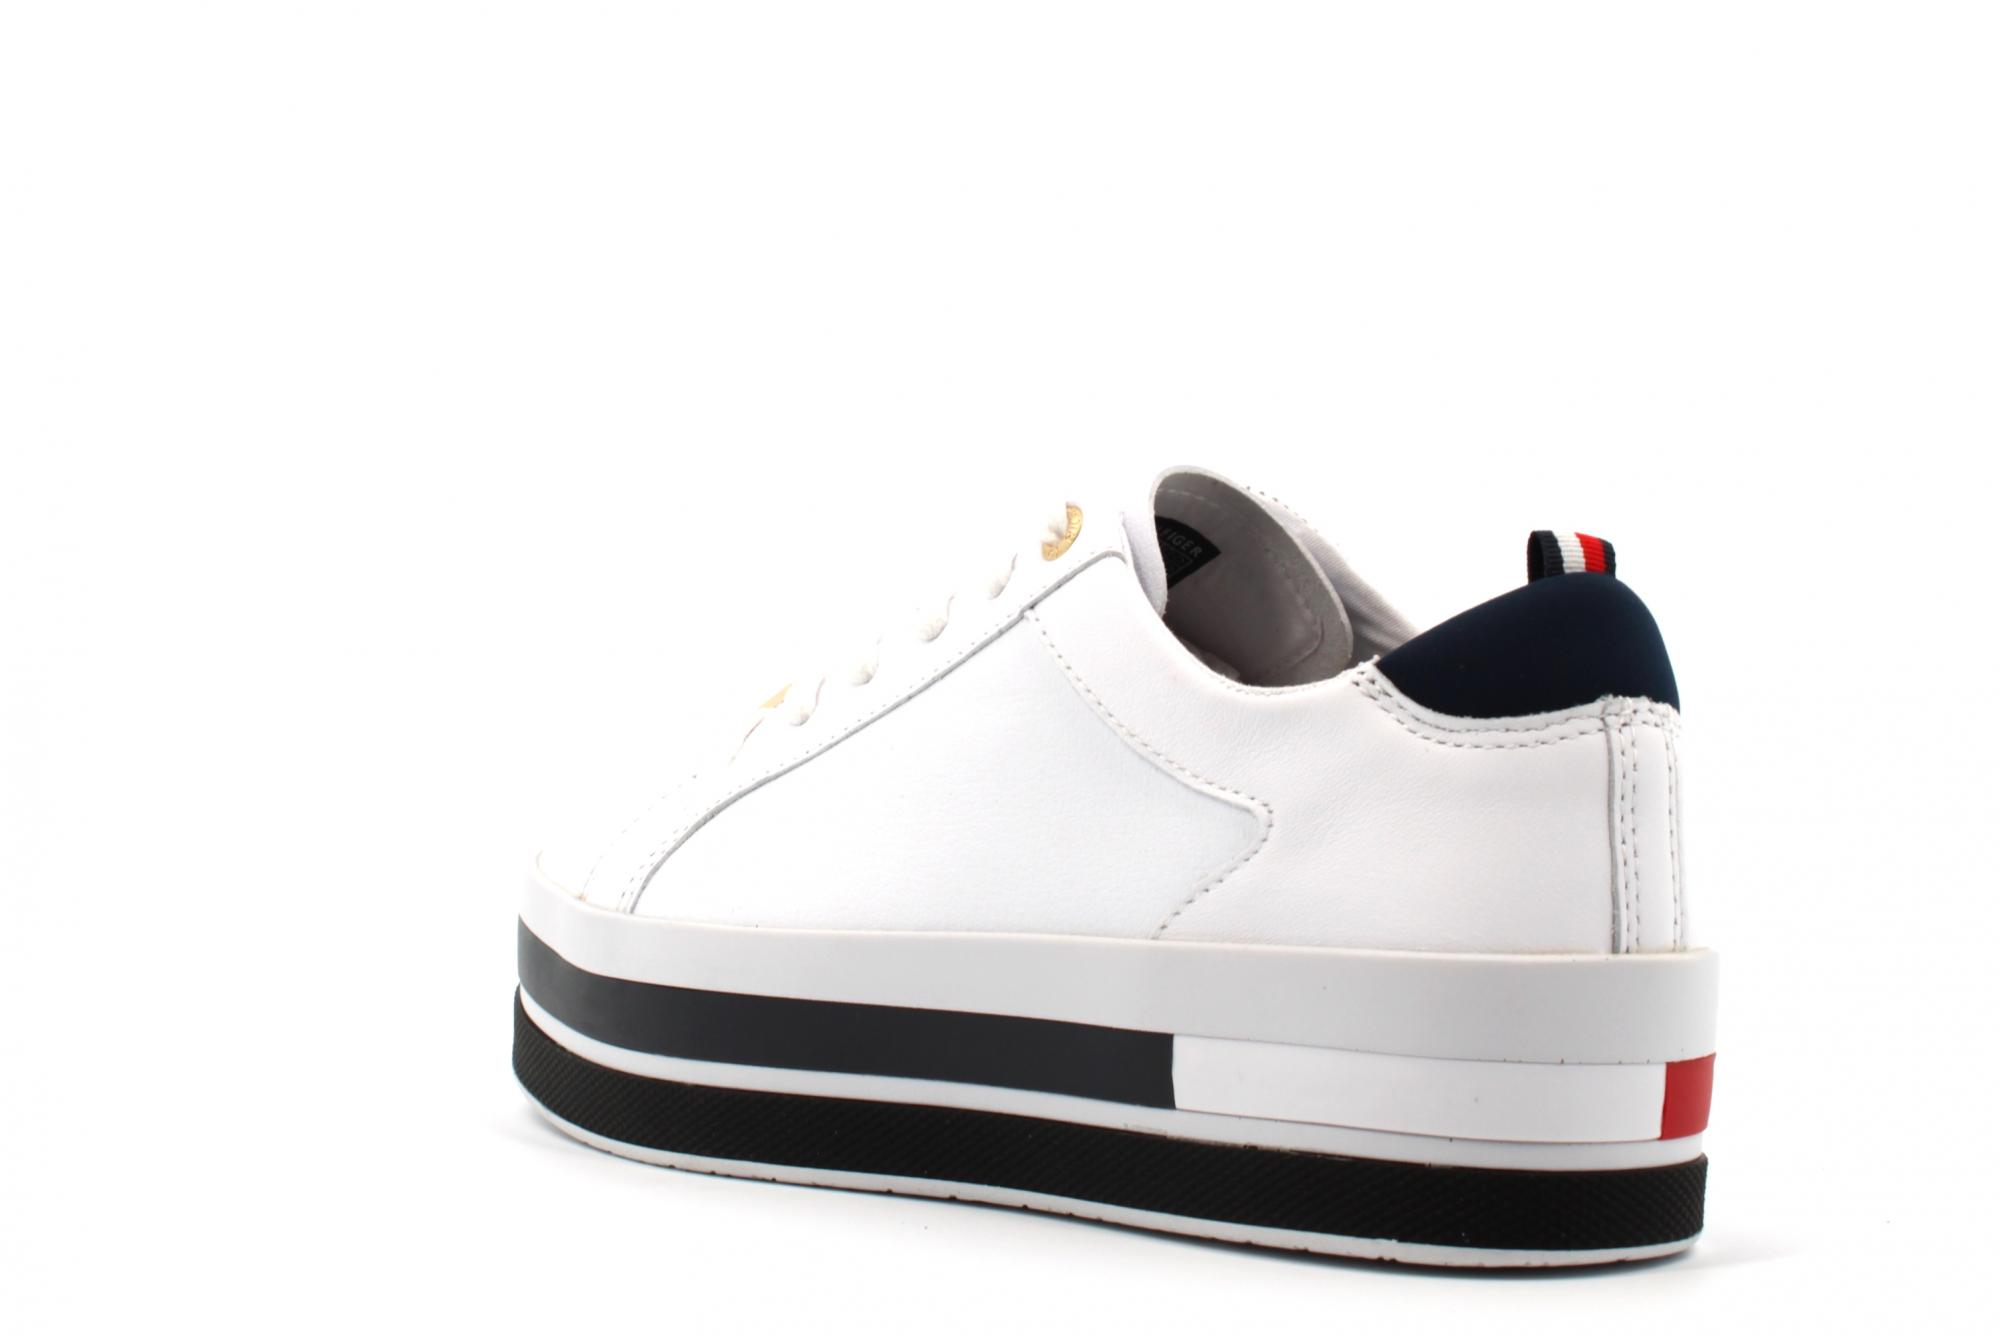 Tommy Hilfiger A19u shoes low sneakers